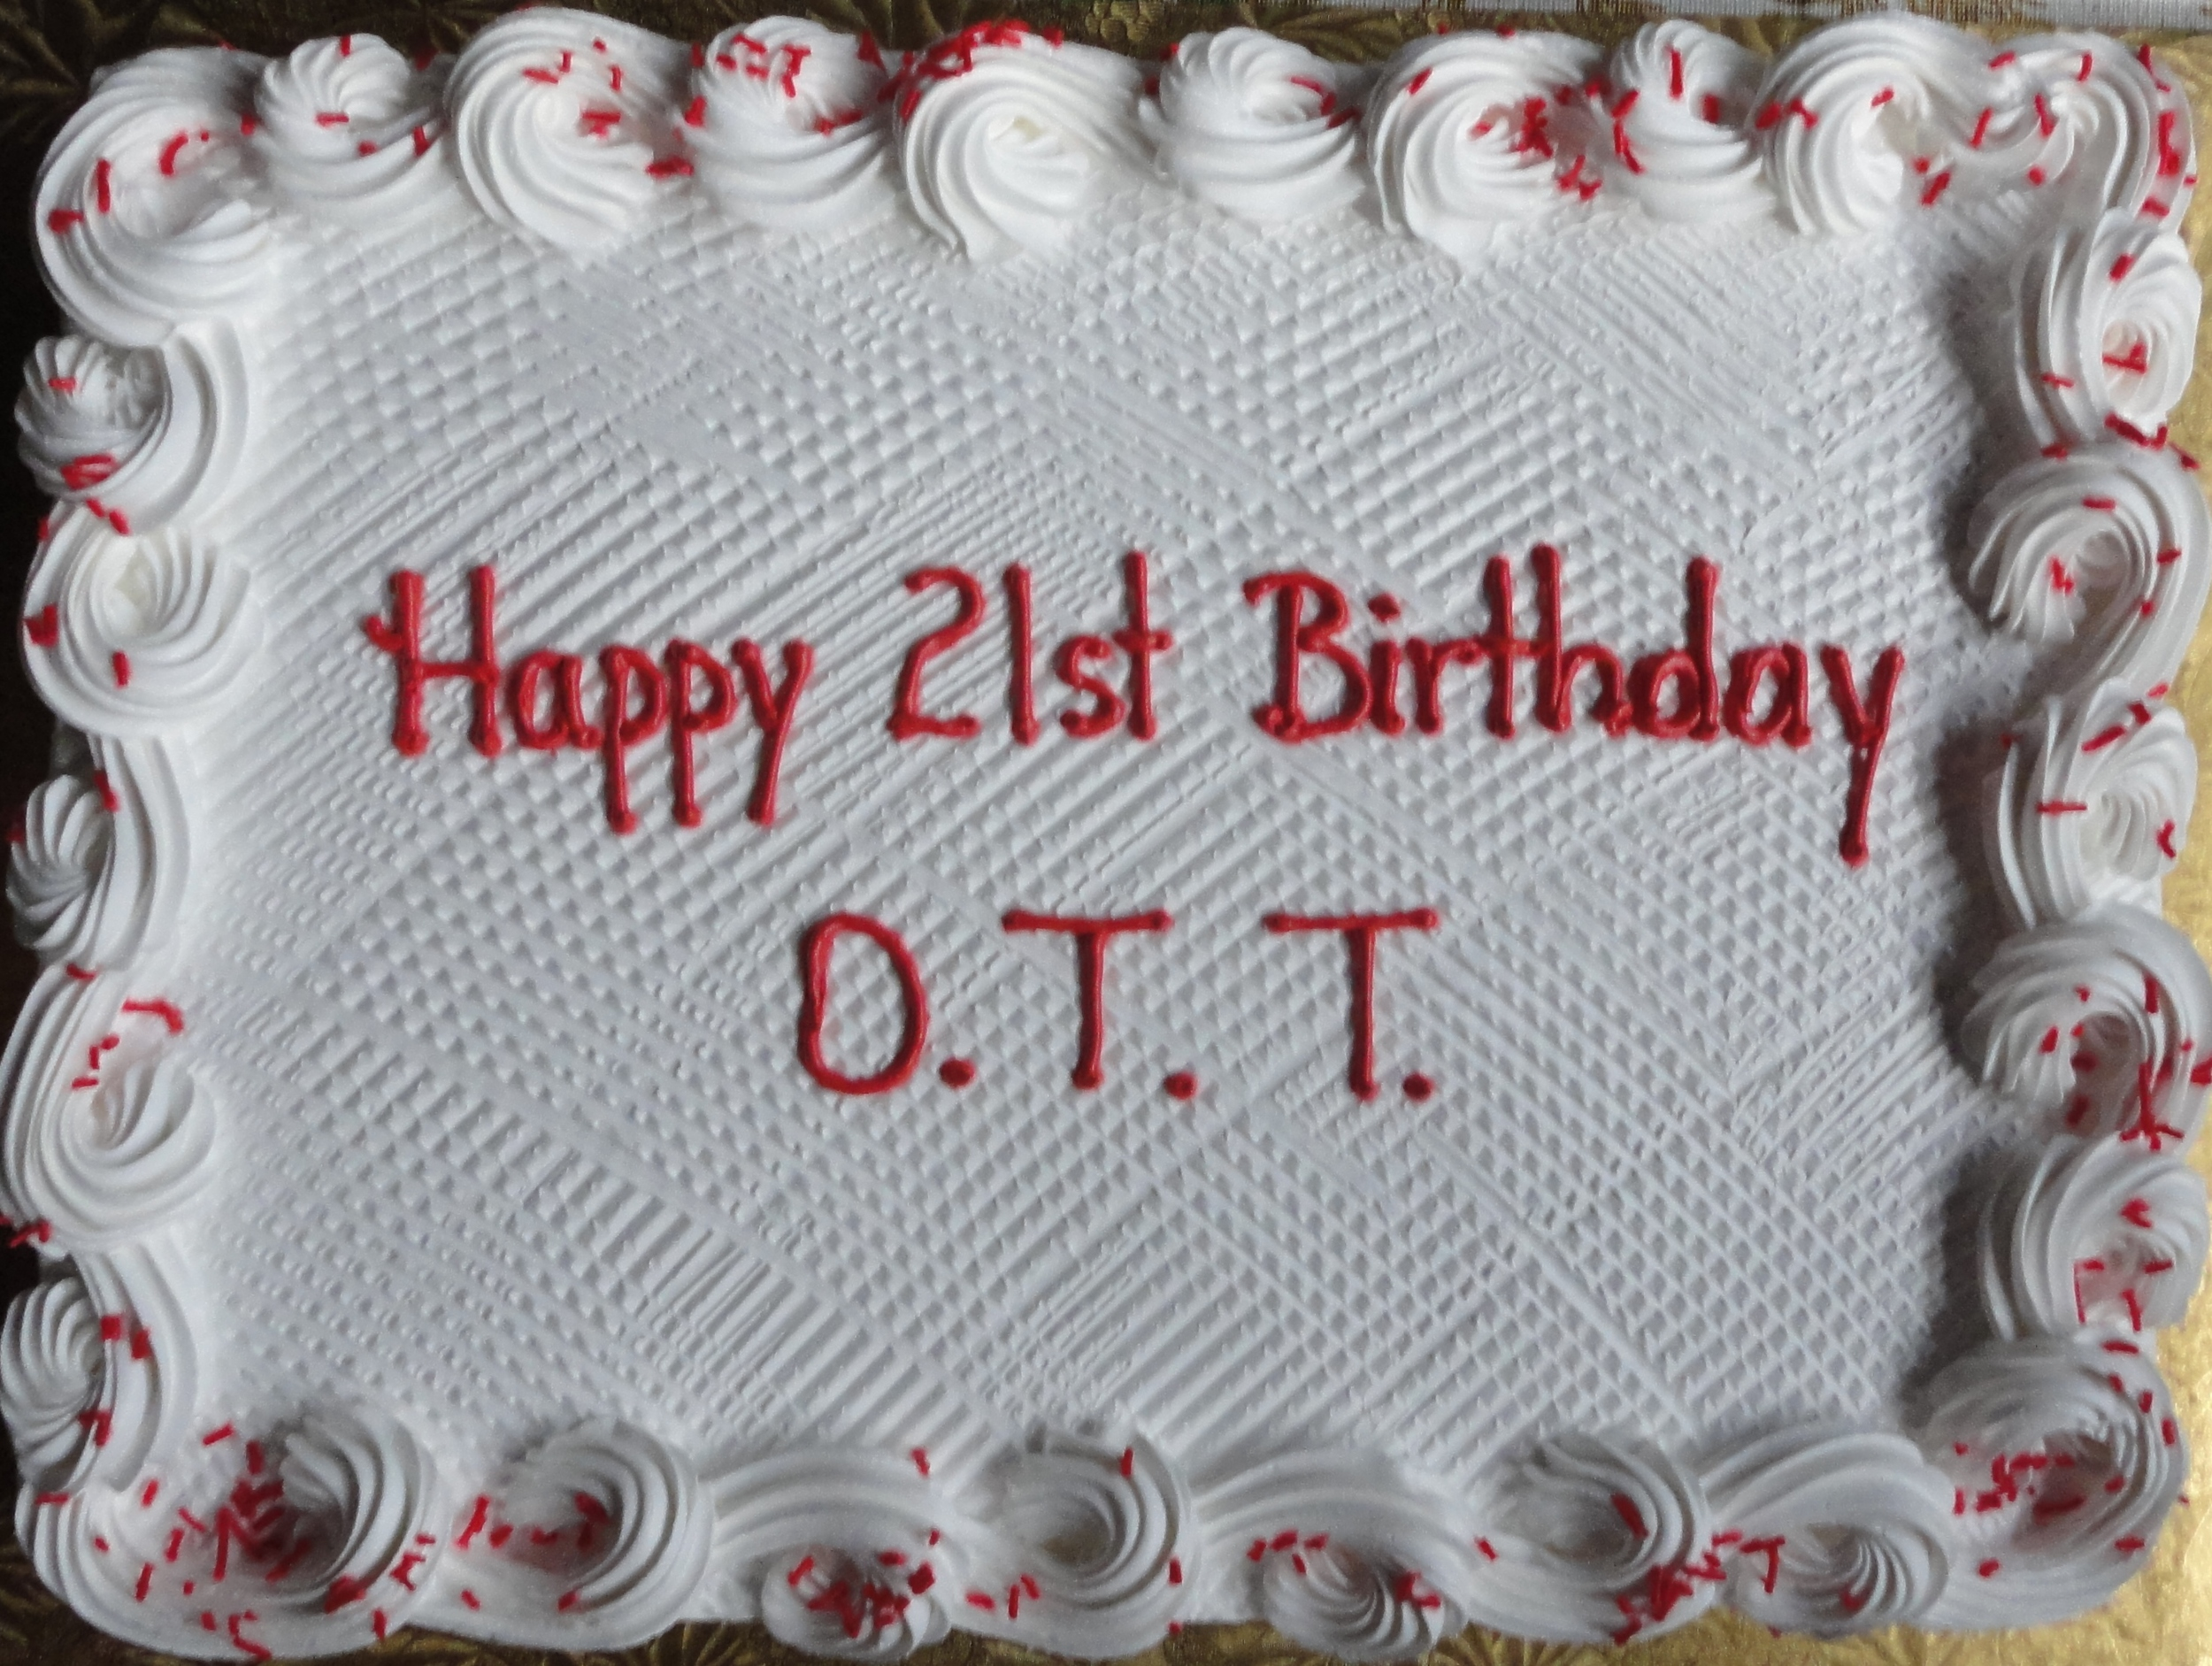 OTT Birthday at Dreamaker Family Campground